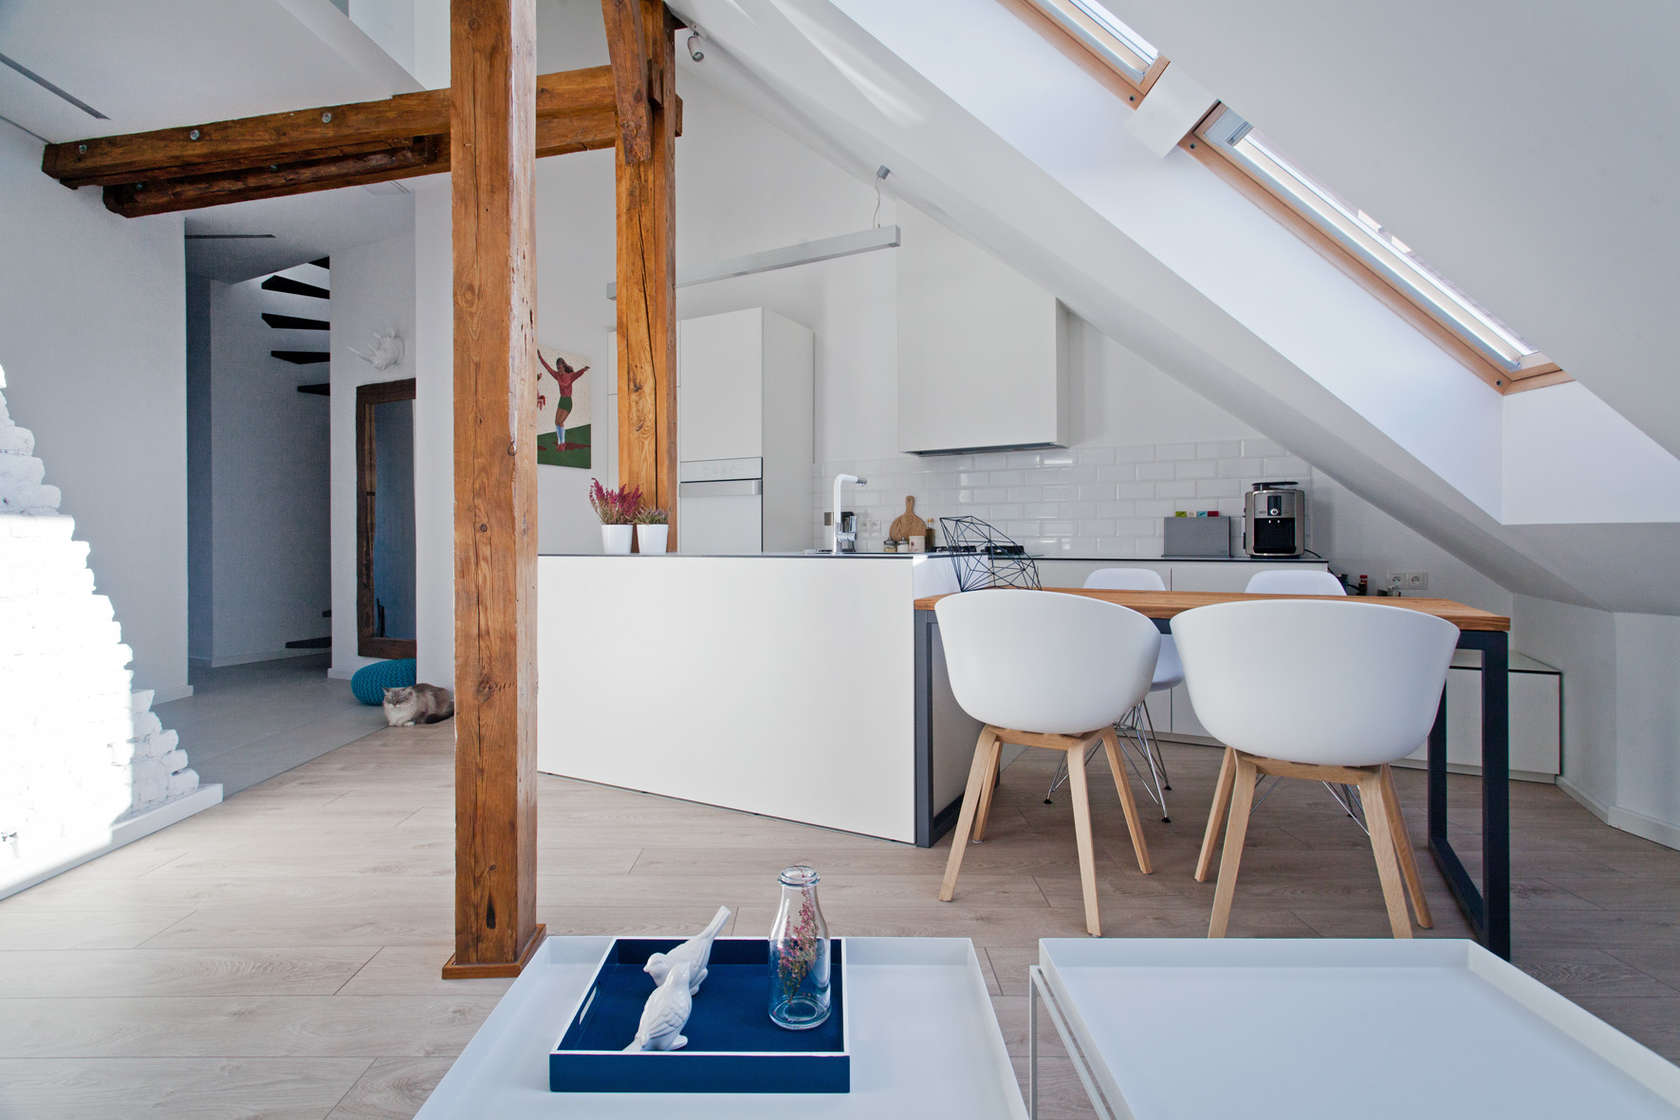 Molded White Chairs - An old attic is transformed into a gorgeous apartment